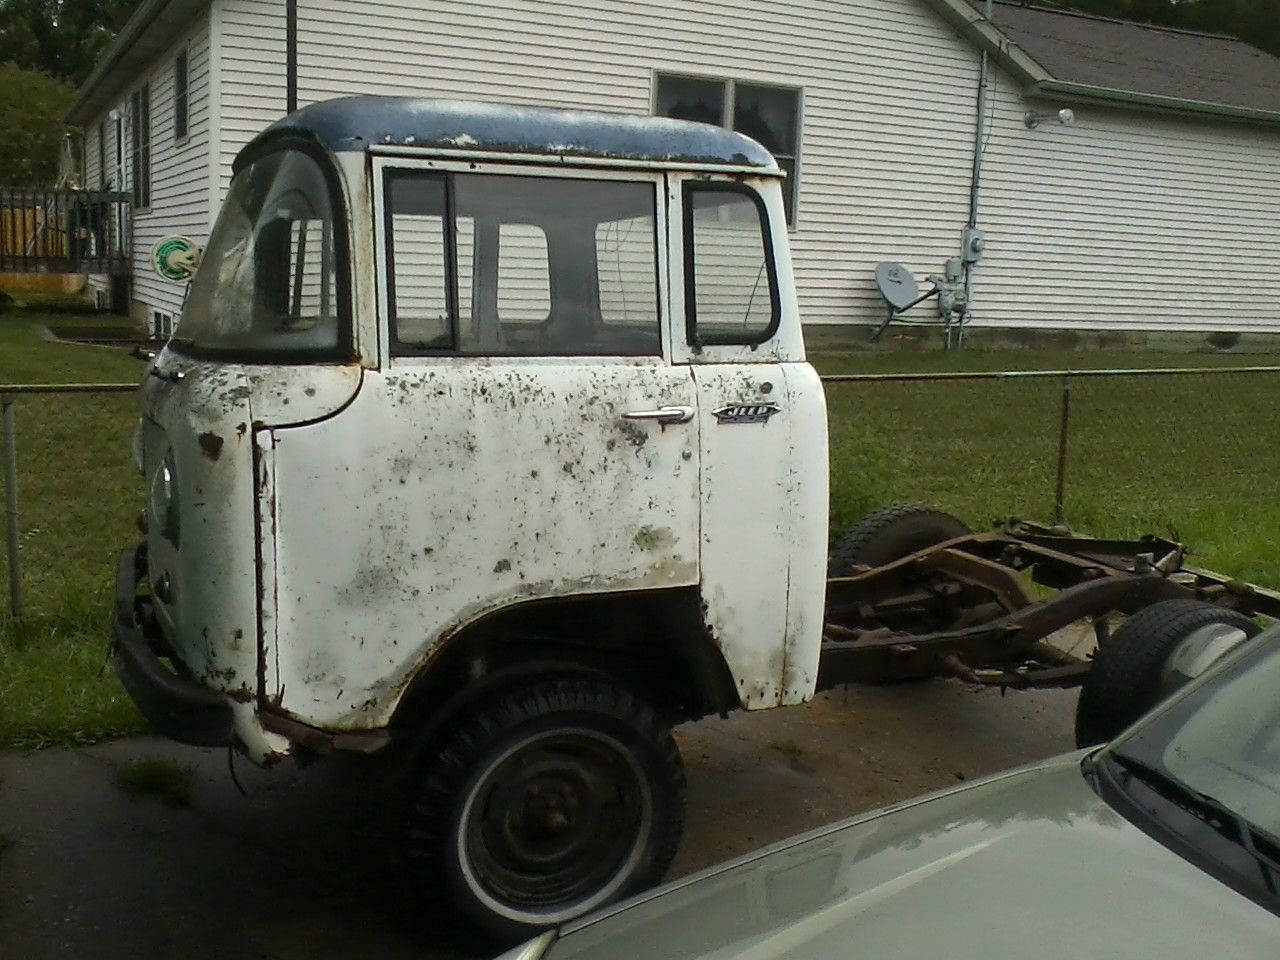 1964 Jeep FC 150.  This thing is awesome, it looks like a miniature semi without the pickup box! It is Four Wheel Drive too!